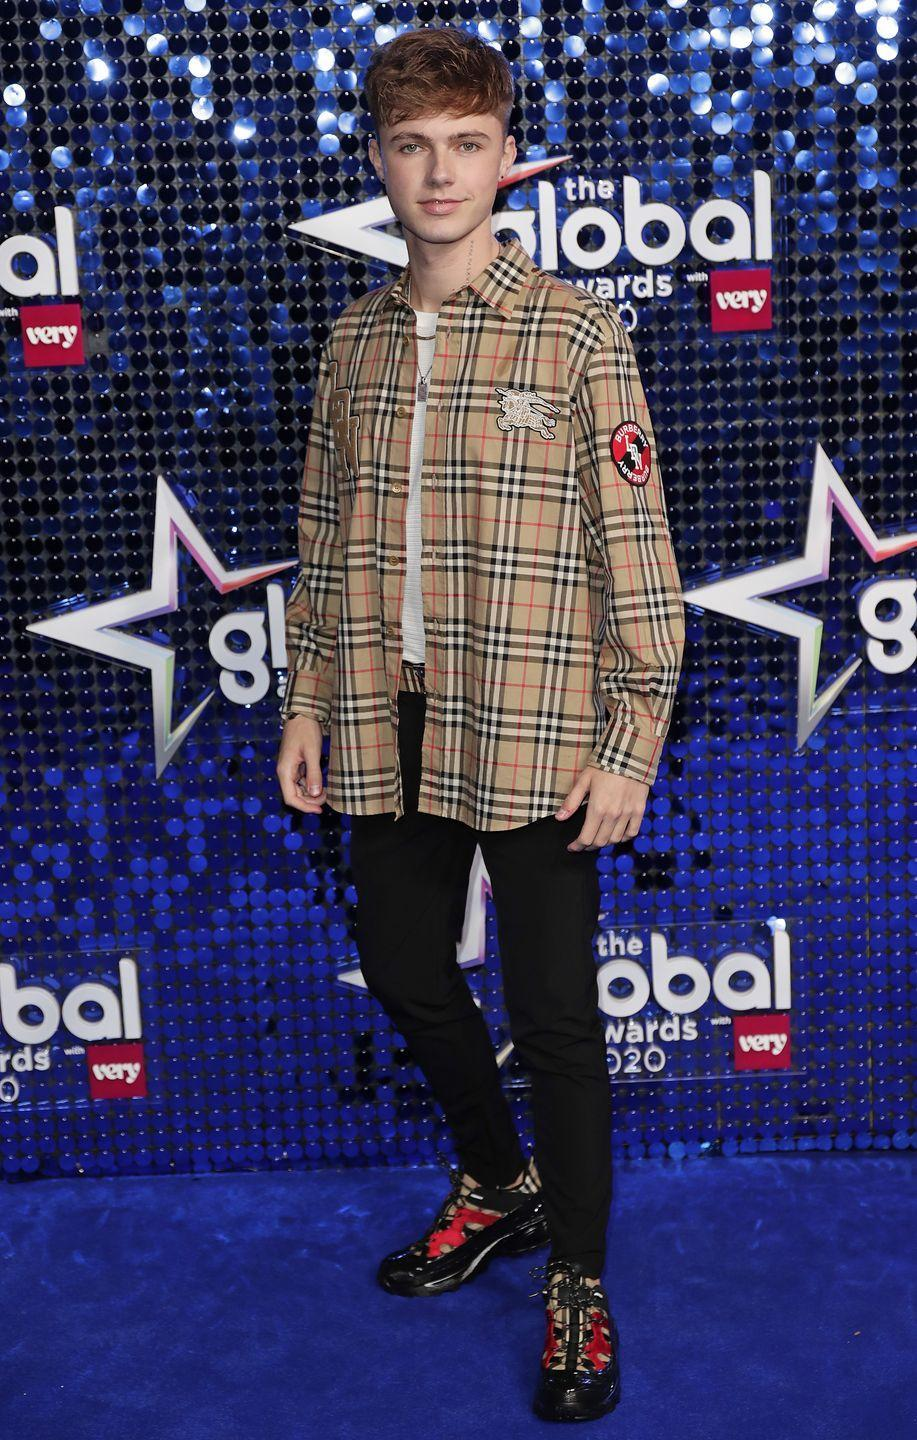 """<p><strong>Who is he? </strong>HRVY ~full name Harvey Leigh Cantwell~ is a singer and YouTube star, who started out as a guest presenter on BBC children's show Friday Download. He has more than 2.7 million YouTube subscribers and his track 'Personal' has over 200 million YouTube views.</p><p><strong>What's he said about Strictly? </strong>""""Being on Strictly is going to be such an amazing experience, and I'm so thankful to be taking part this year,"""" he said on KISS Breakfast. """"I think my mum is more excited that she'll be able to see me every Saturday night now.""""</p><p>HRVY hasn't yet taken his official Strictly photo after he tested positive for coronavirus. He's currently isolating. </p>"""